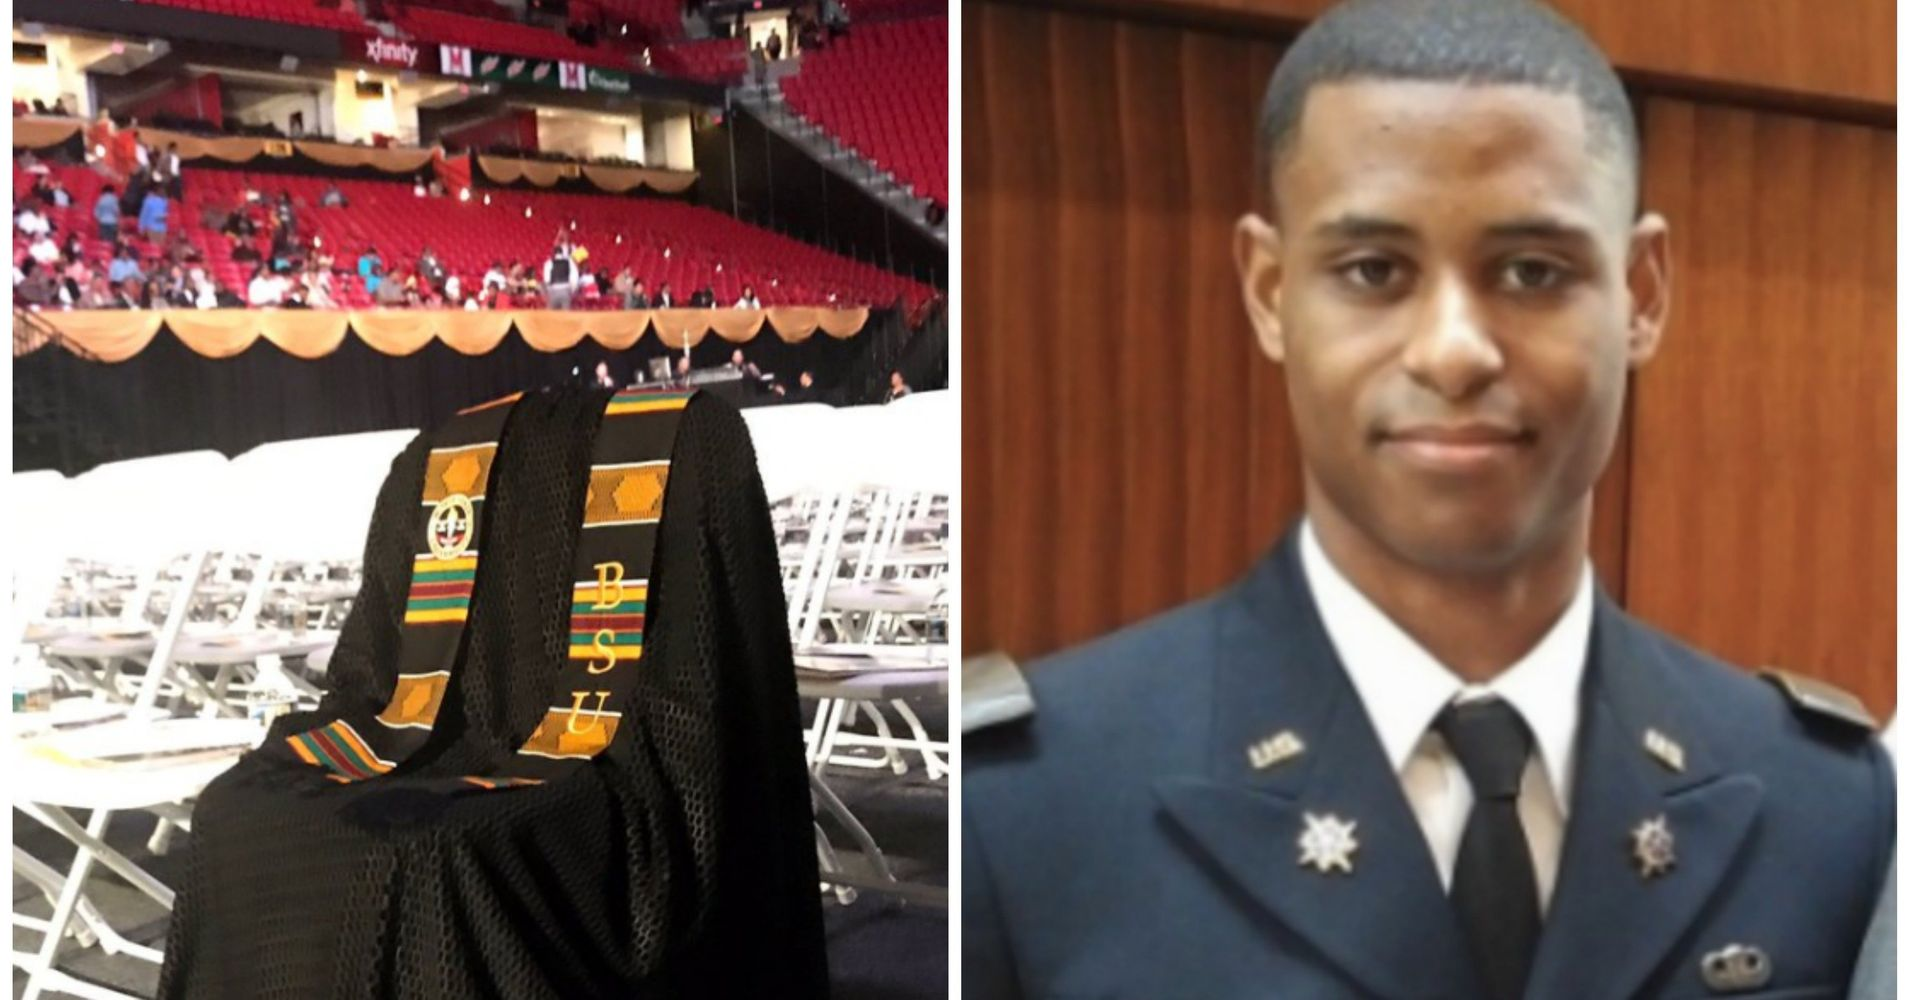 Richard Collins III Honored At Commencement With Graduation Gown On ...